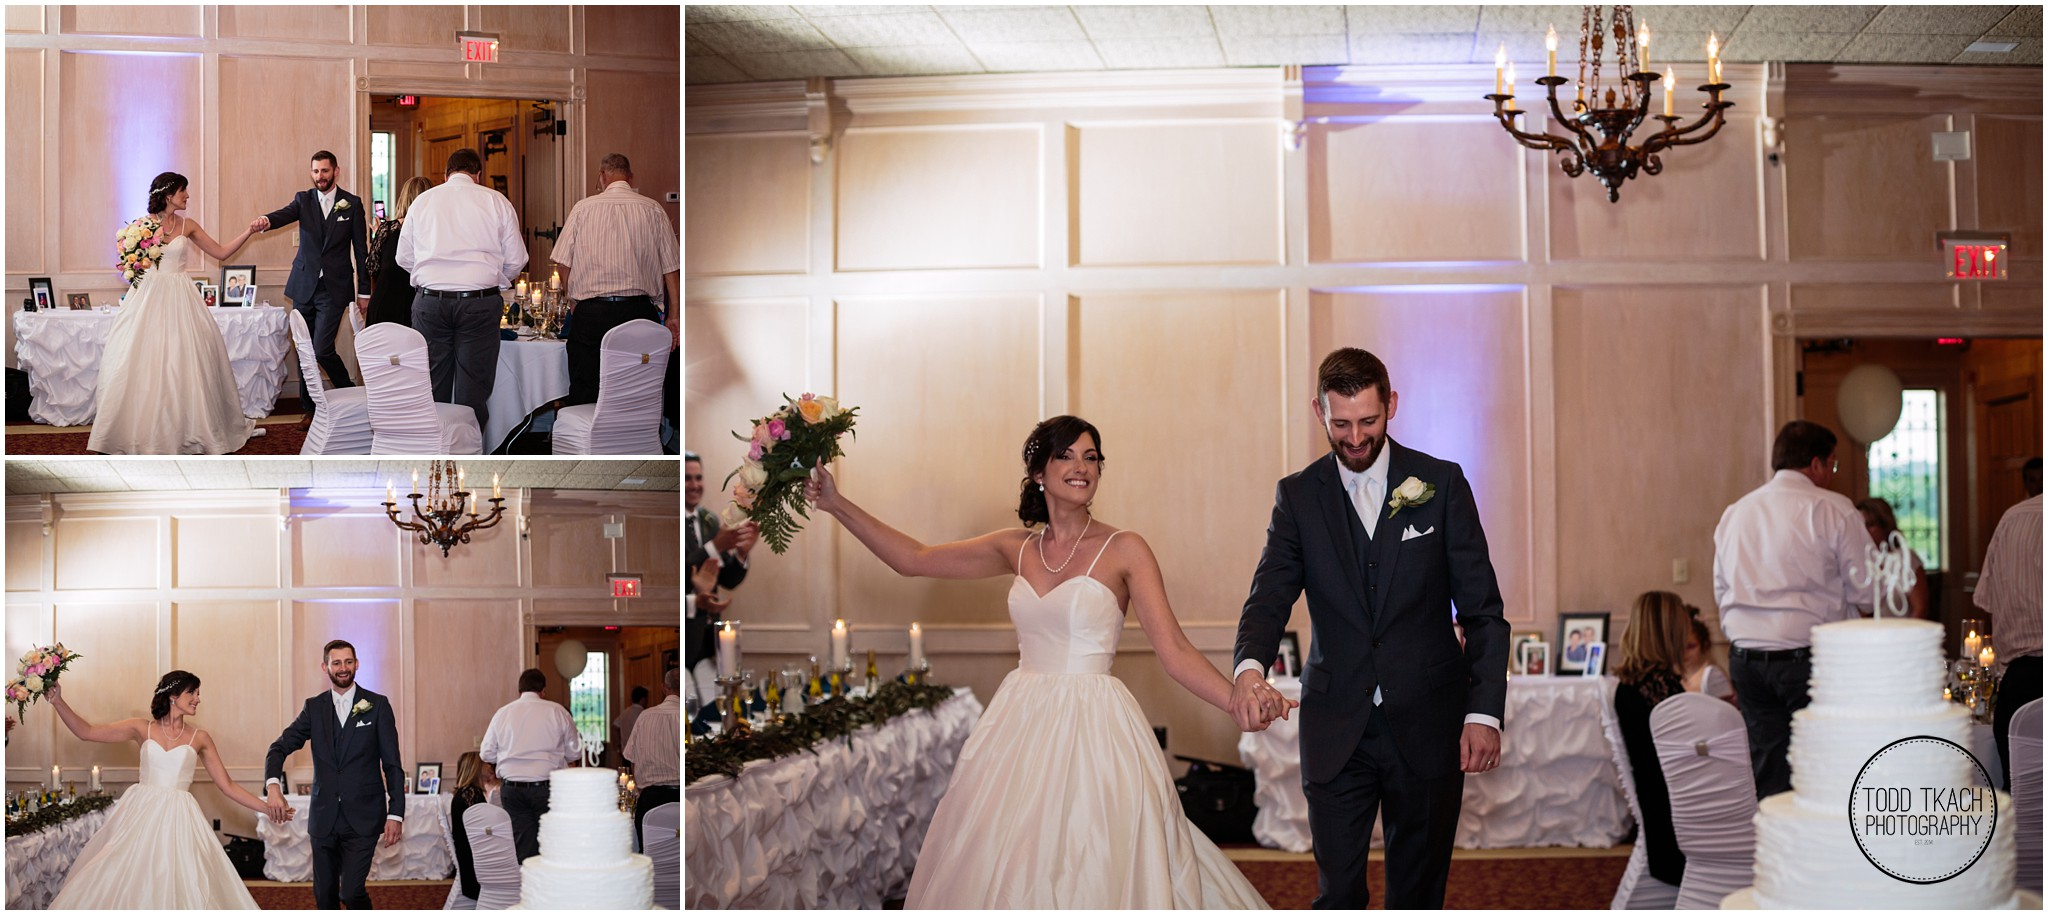 Jessica & Todd - Entrance Collage